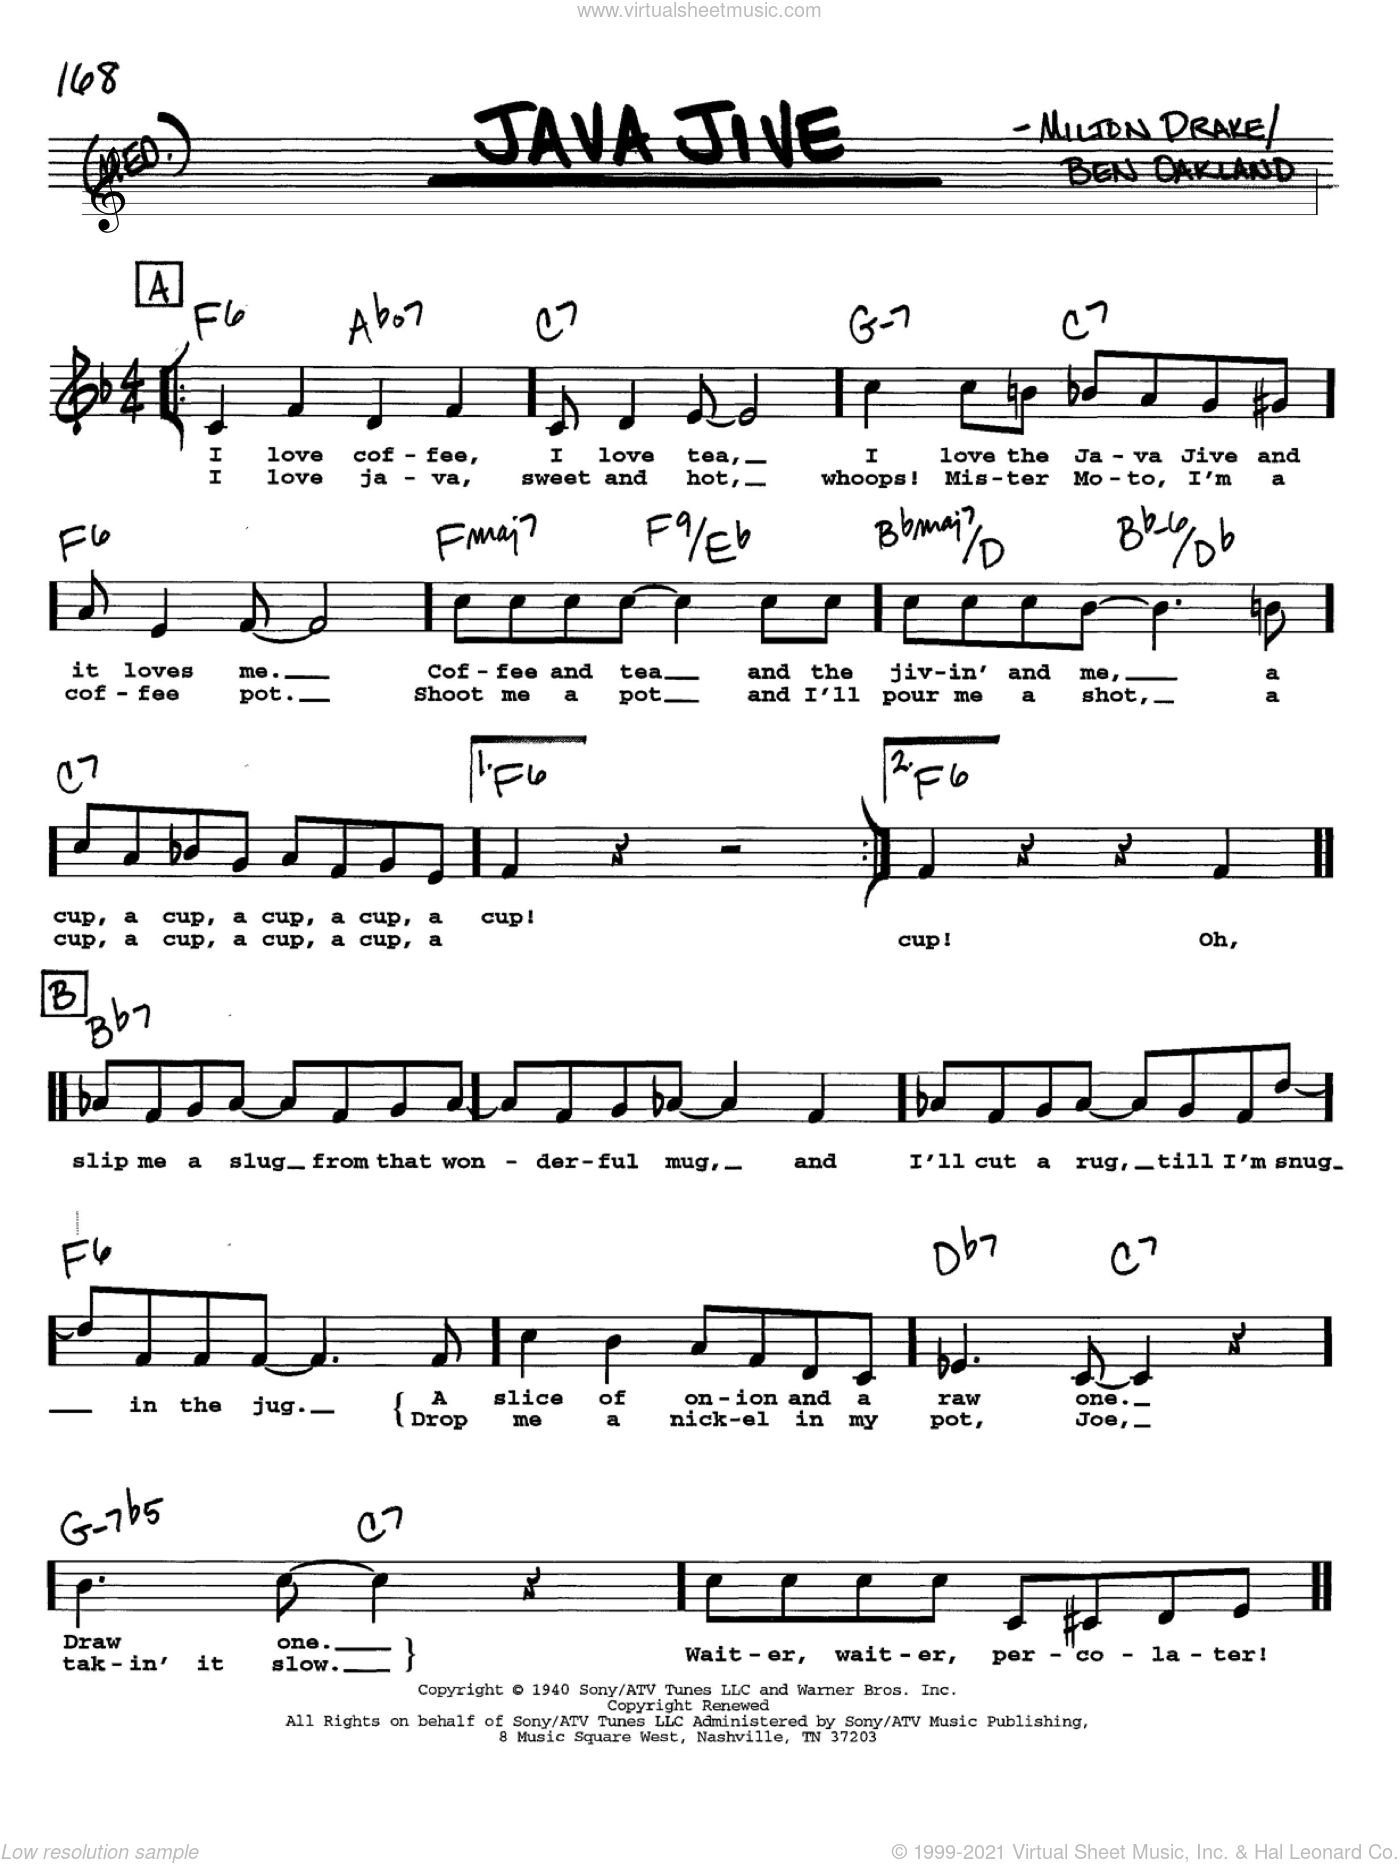 Java Jive sheet music for voice and other instruments  by The Ink Spots, Ben Oakland and Milton Drake, intermediate skill level